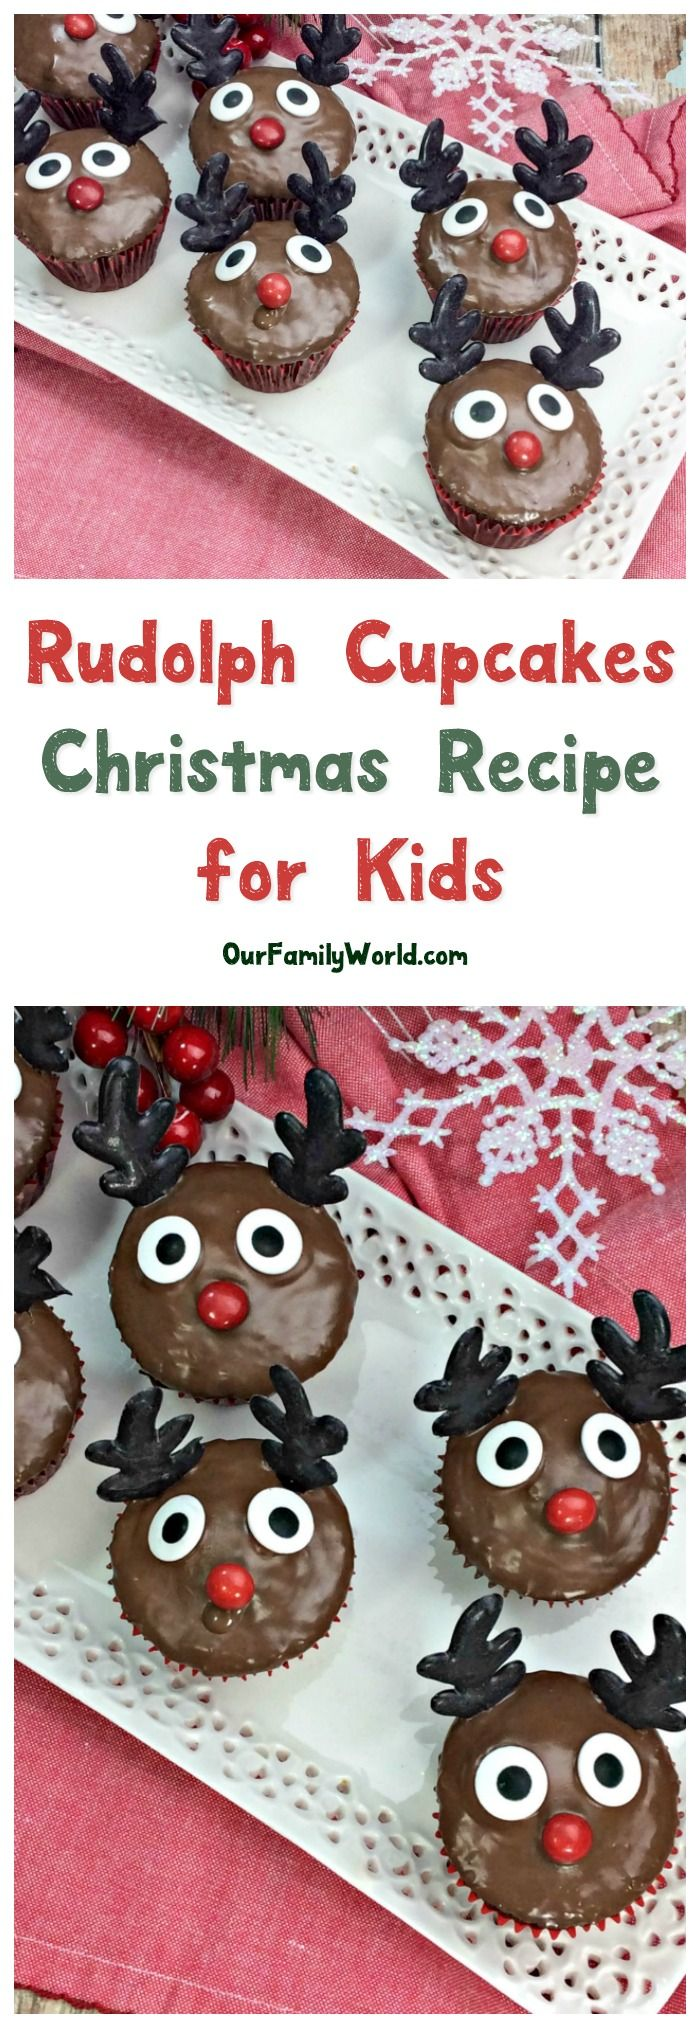 No one will laugh and call you names when you pull out these darling Rudolph Cupcakes at your holiday party! Check them out and grab the recipe!